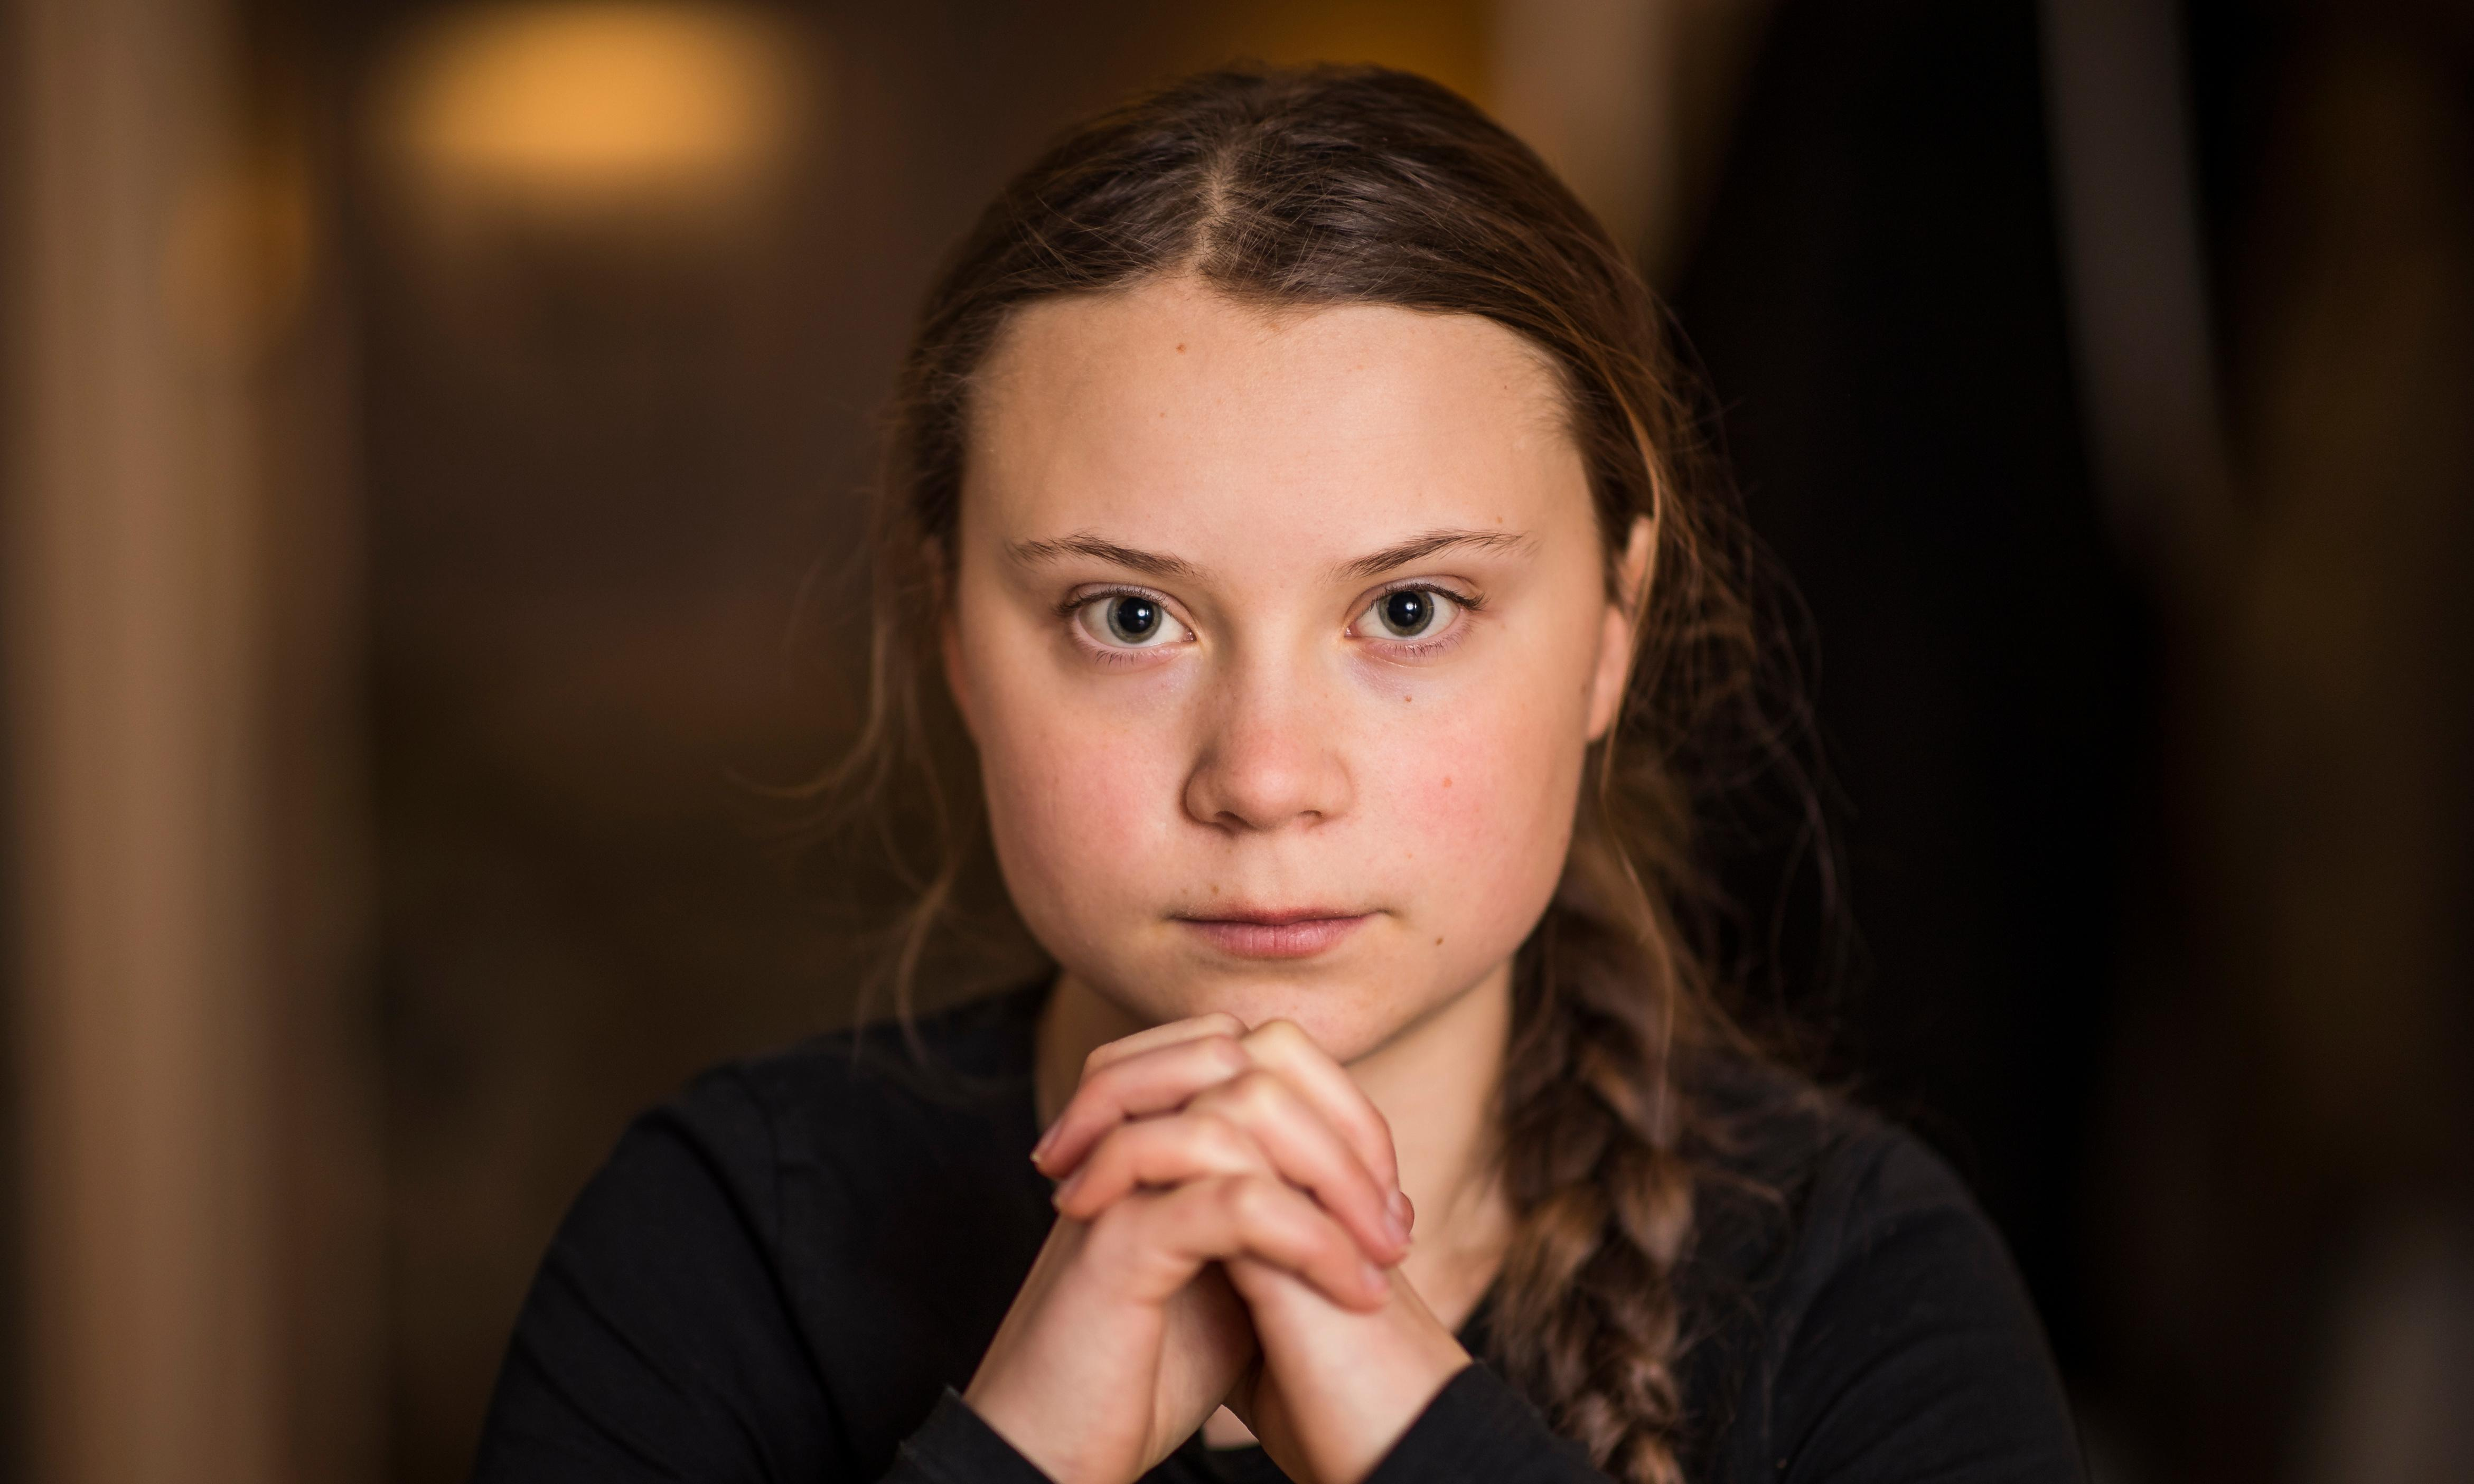 Greta Thunberg, schoolgirl climate change warrior: 'Some people can let things go. I can't'